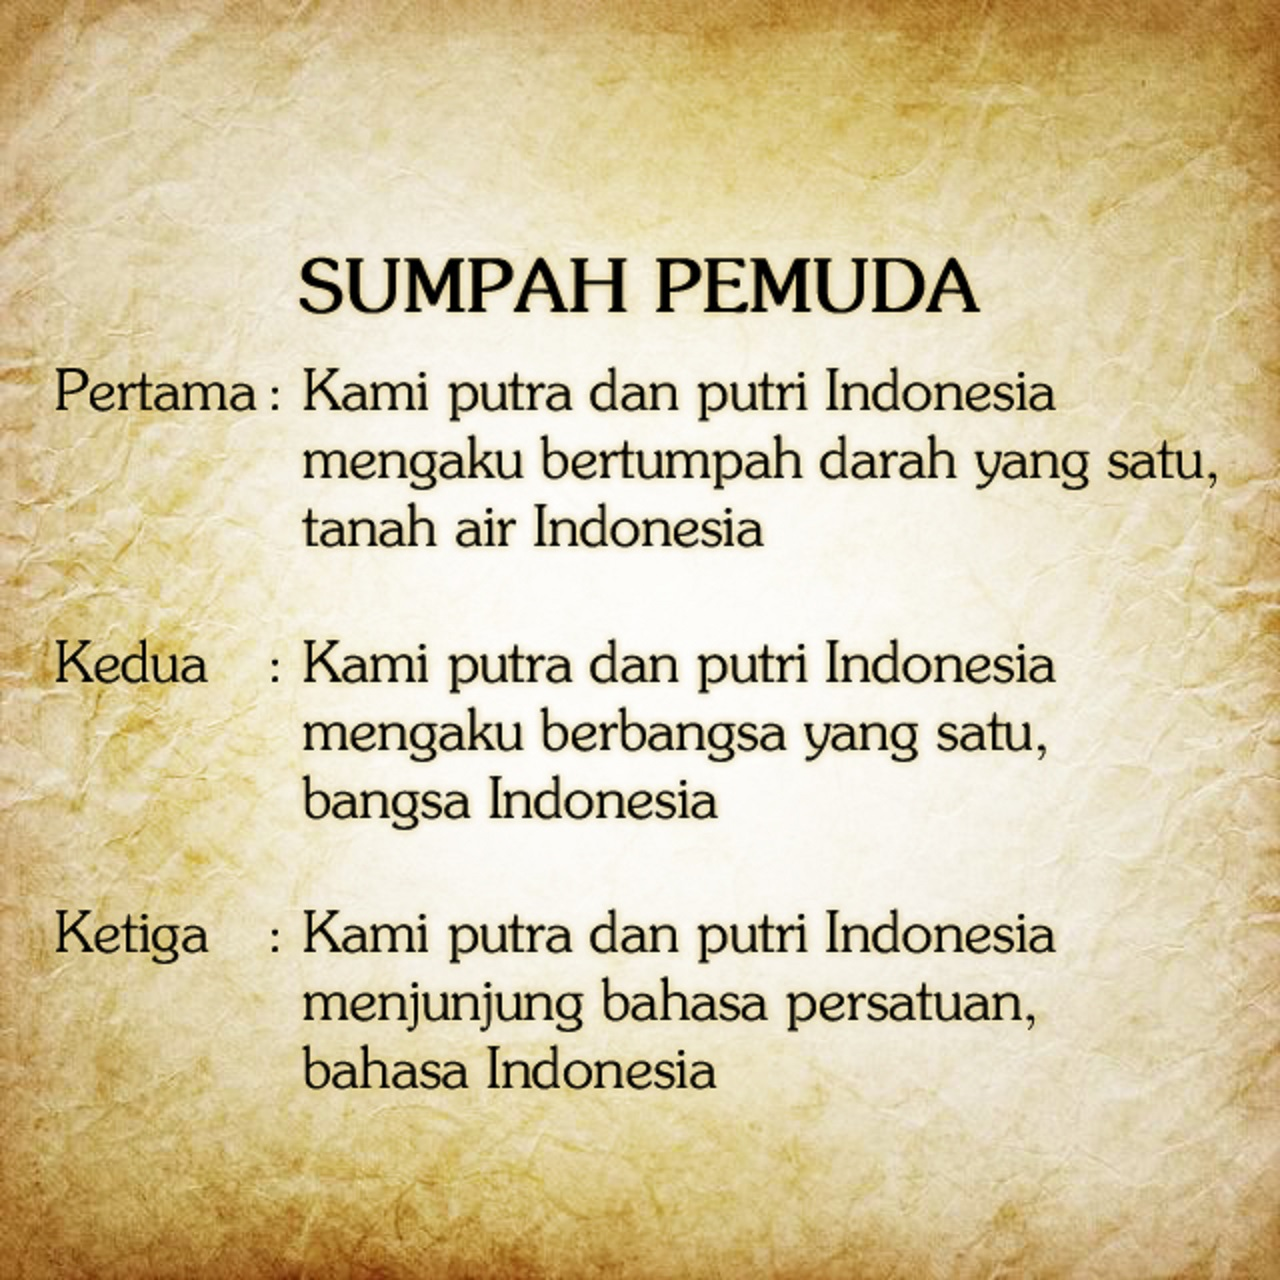 https://upload.wikimedia.org/wikipedia/commons/0/01/Teks_sumpah_pemuda_yang_benar.jpg